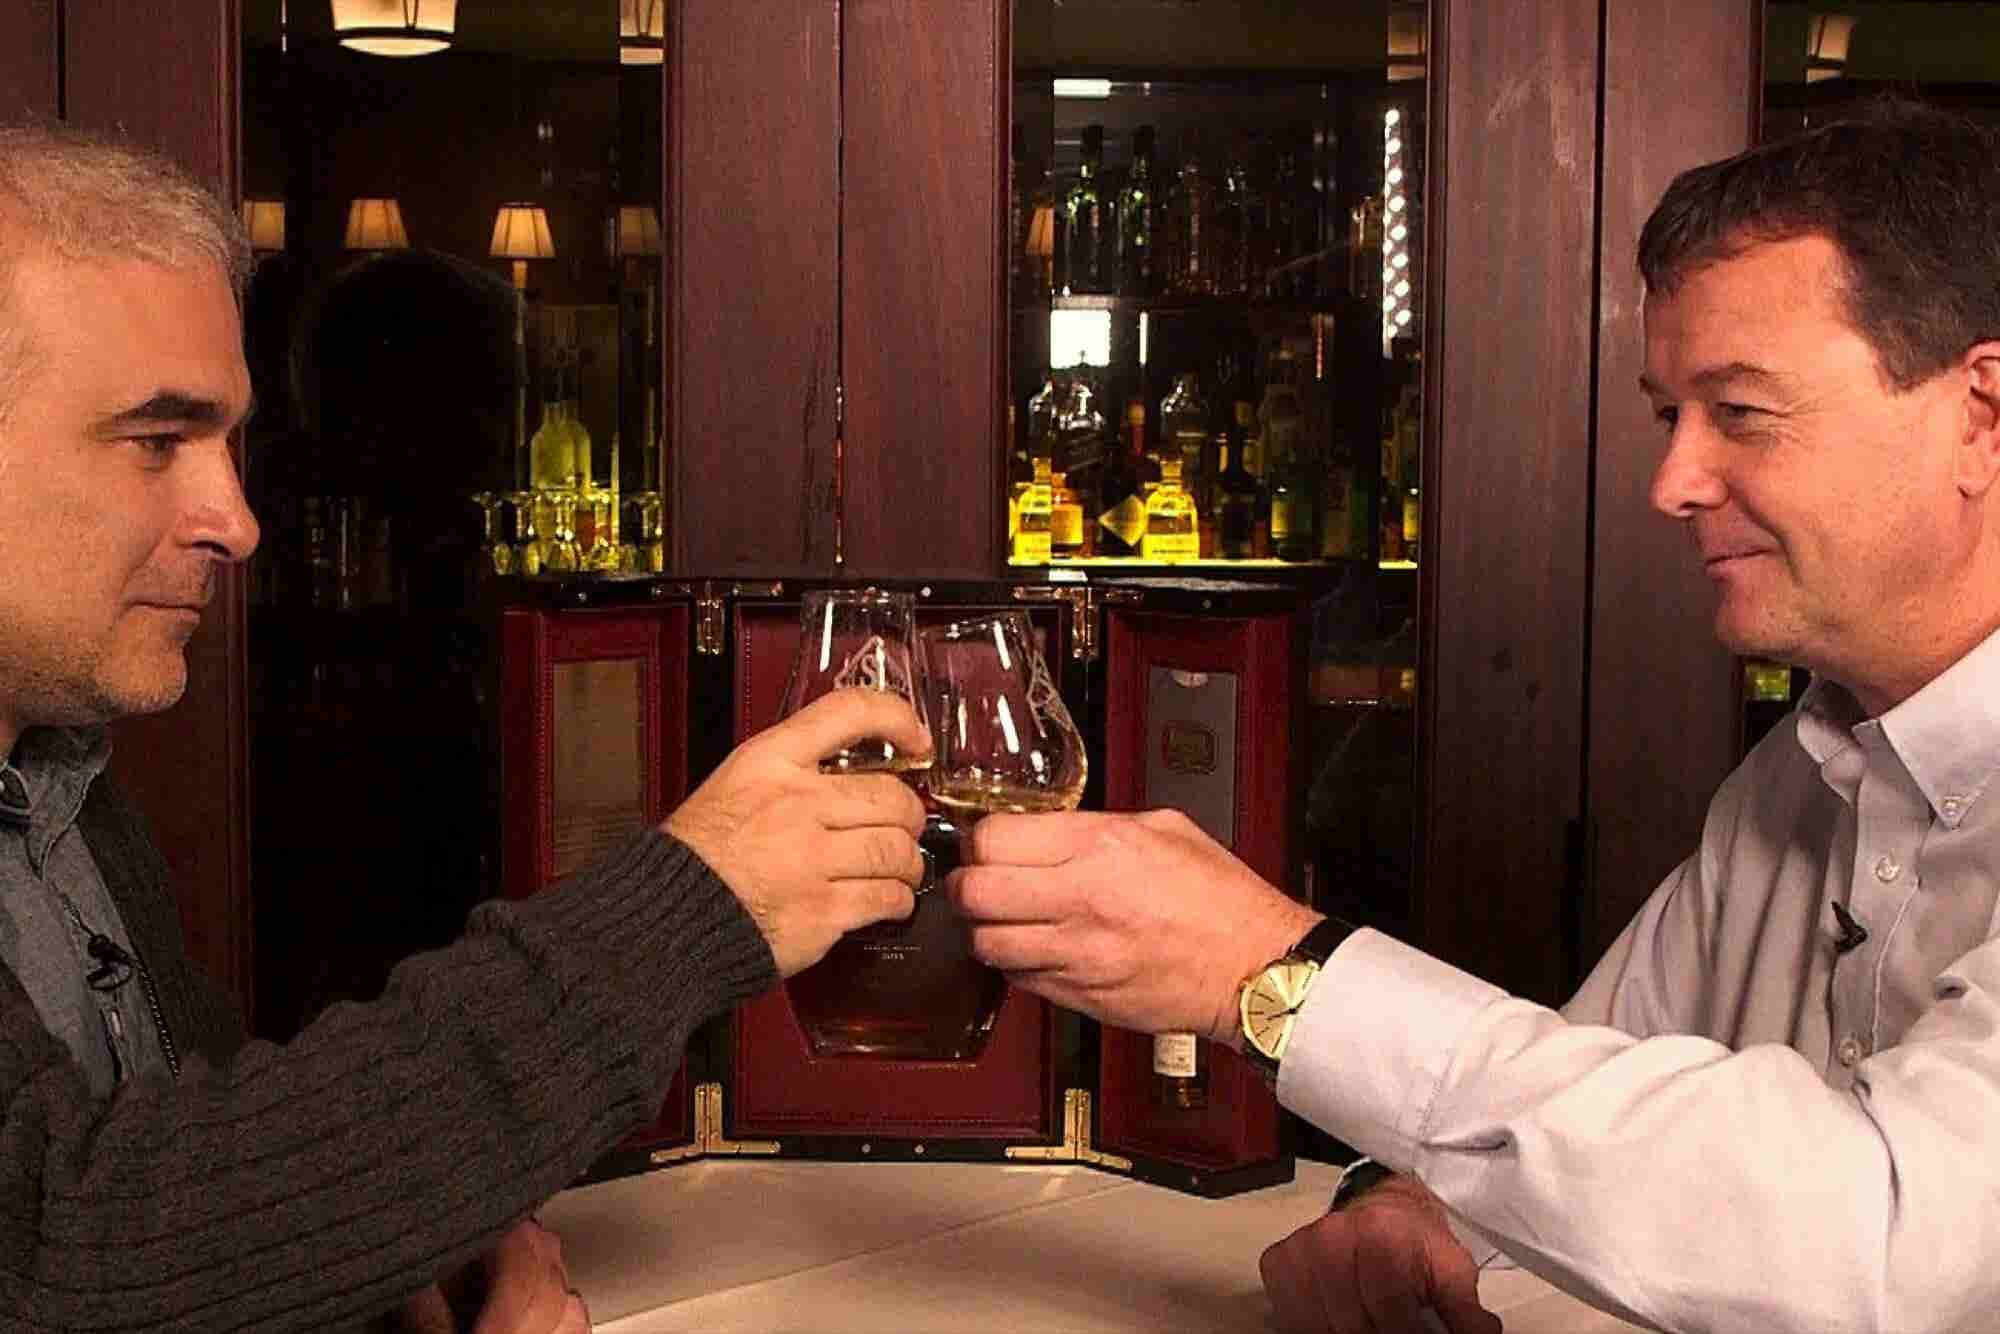 Here's What Happens When You Open a $3,000 Bottle of Scotch